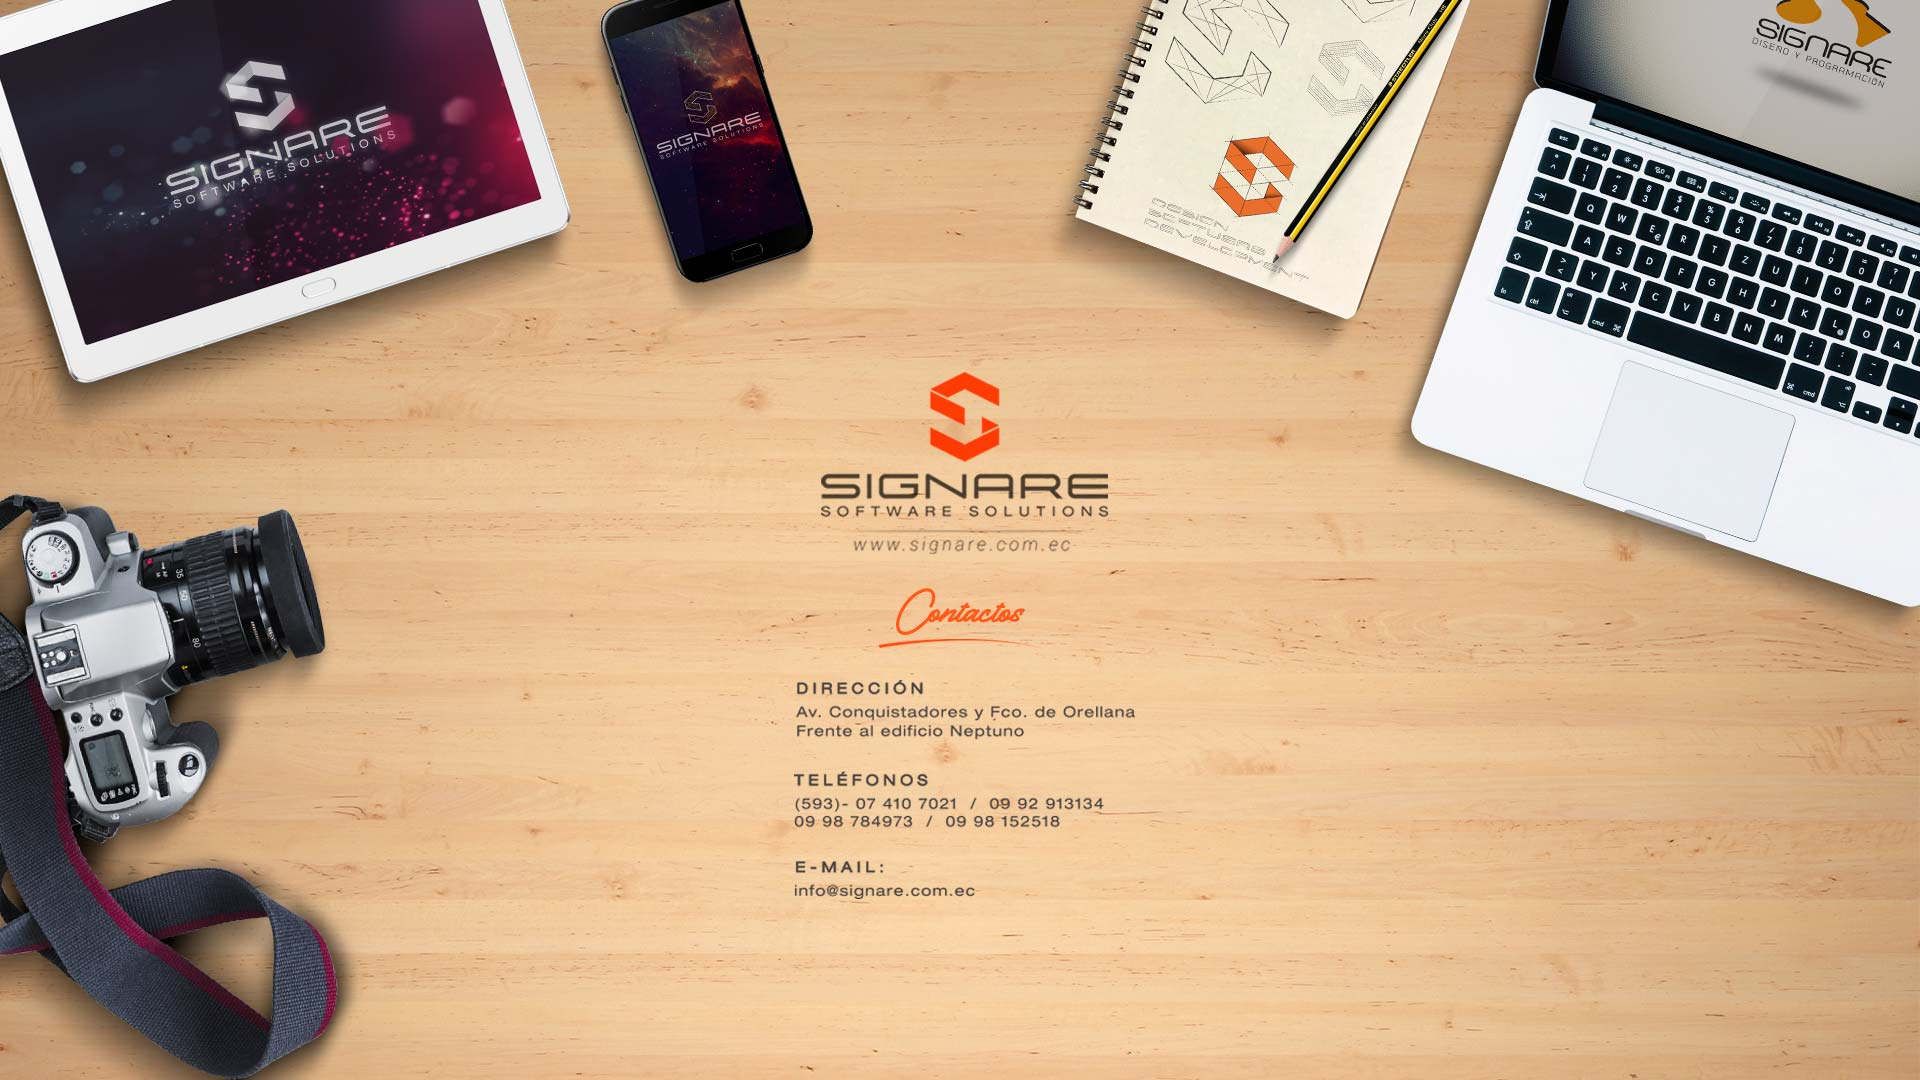 Signare Software Solutions